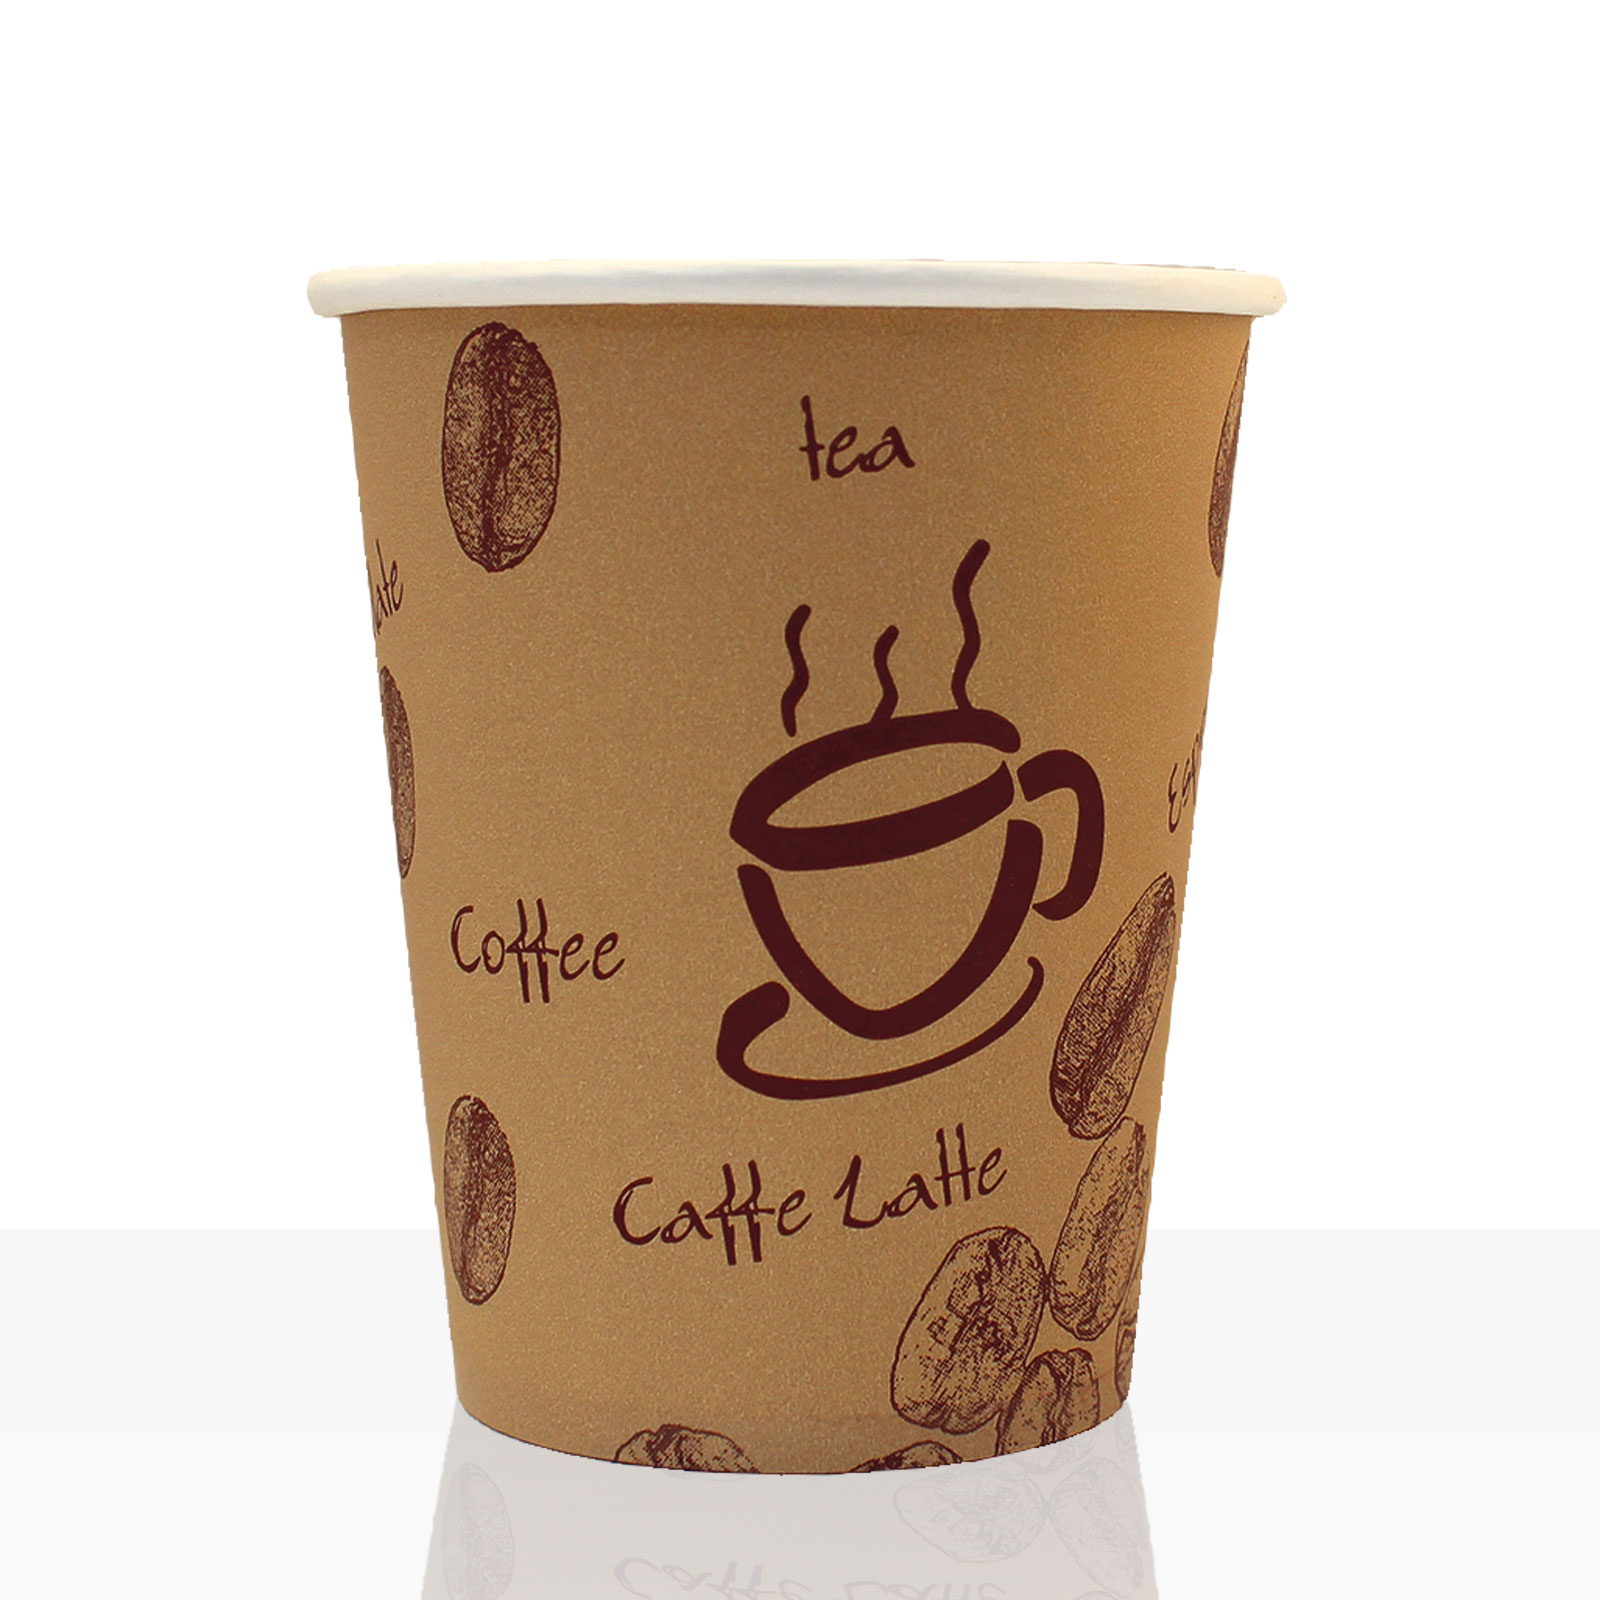 Coffee to go Becher aus Hartpapier 0,3l, 1000Stk, Pappbecher, Kaffeebecher to go